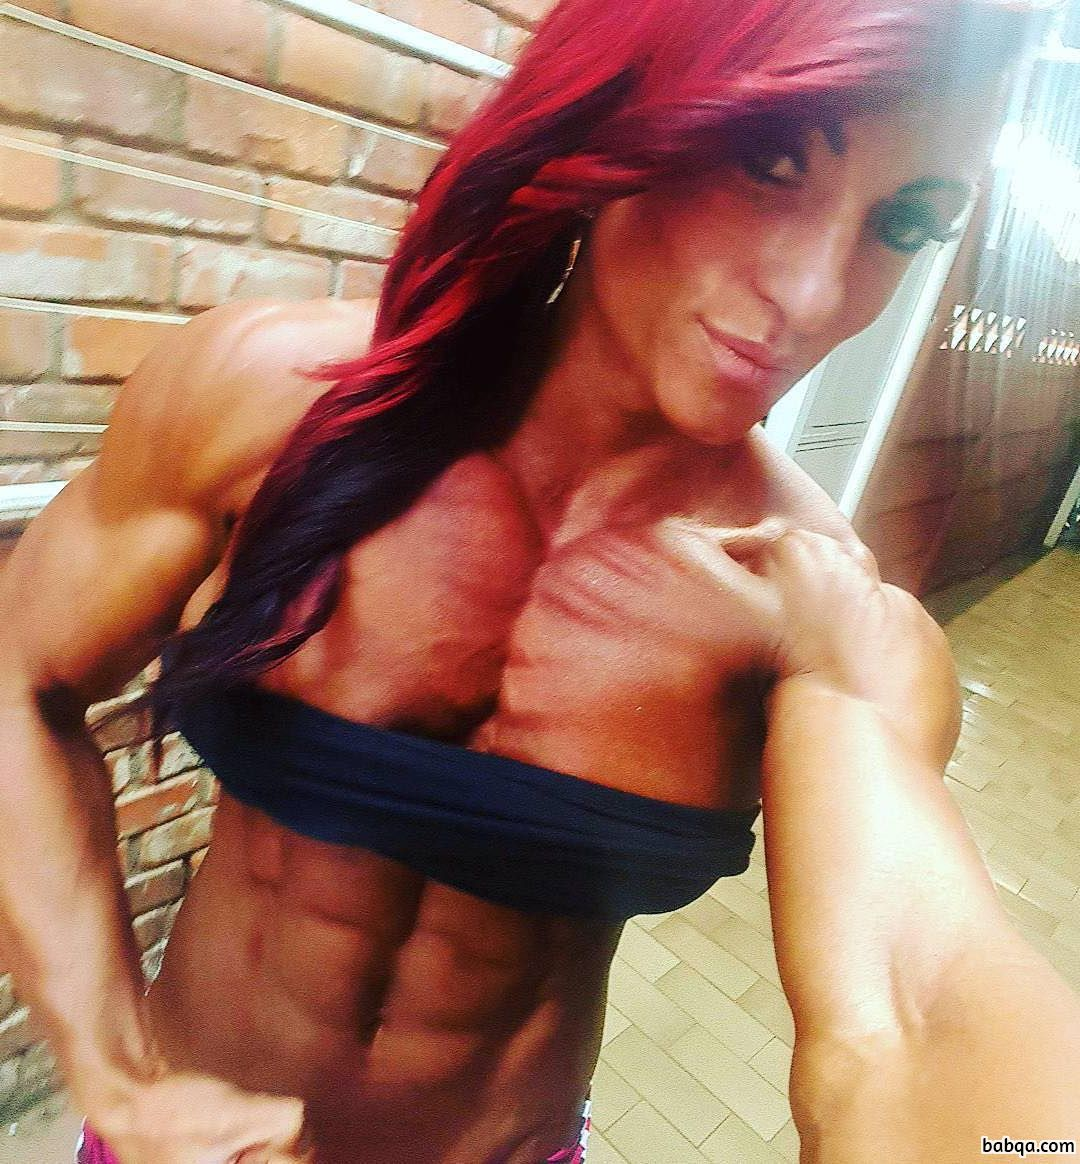 spicy chick with strong body and muscle biceps pic from tumblr